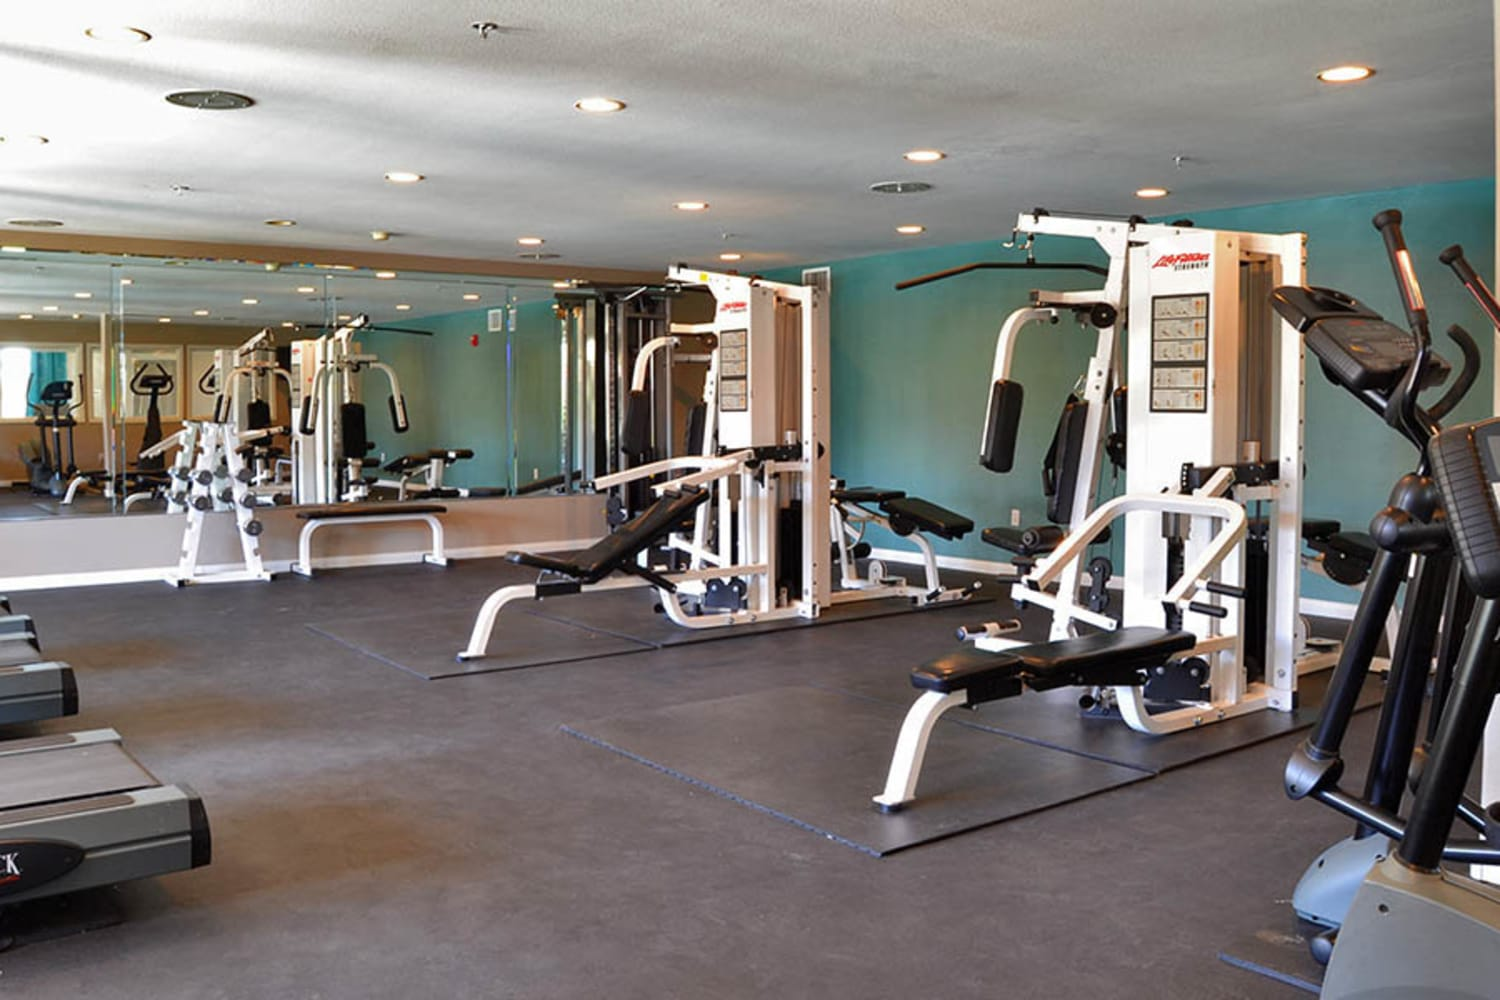 2150 Arizona Ave South in Chandler, Arizona, offers a fitness center